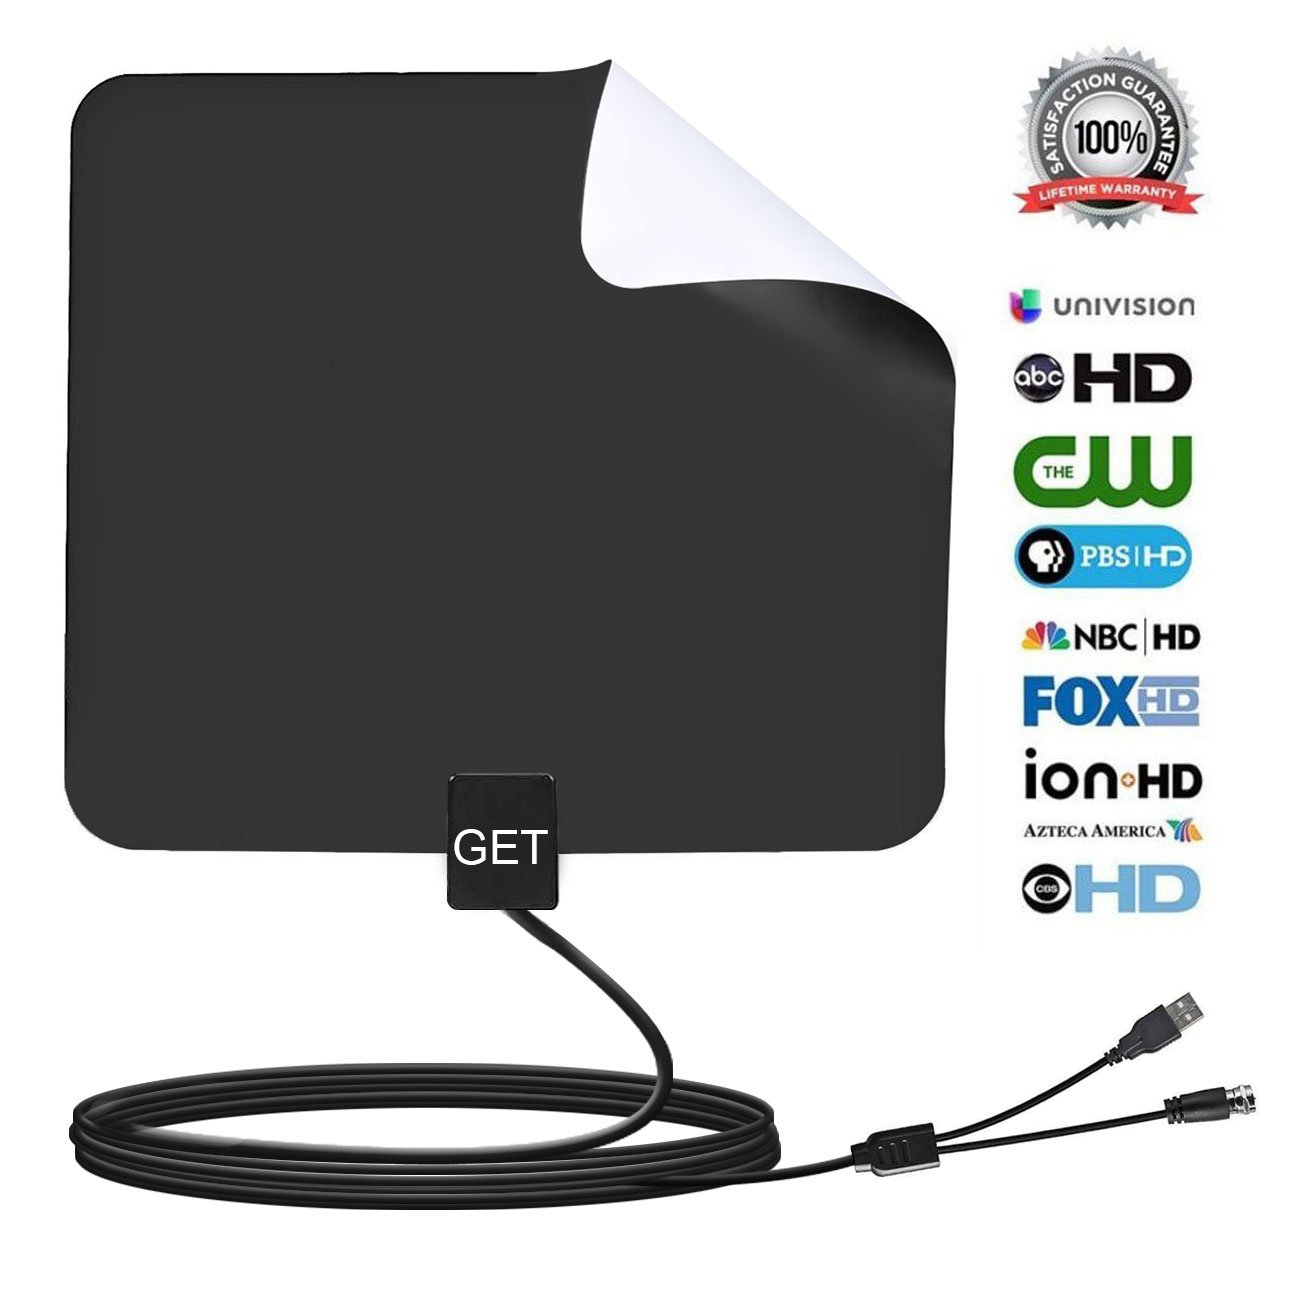 Get Amplified HDTV Antenna 50~65 Mile Range for Digital TV,Support 4K/1080P/Full HD/VHF/UHF with 13.2ft Coax Cable(black)